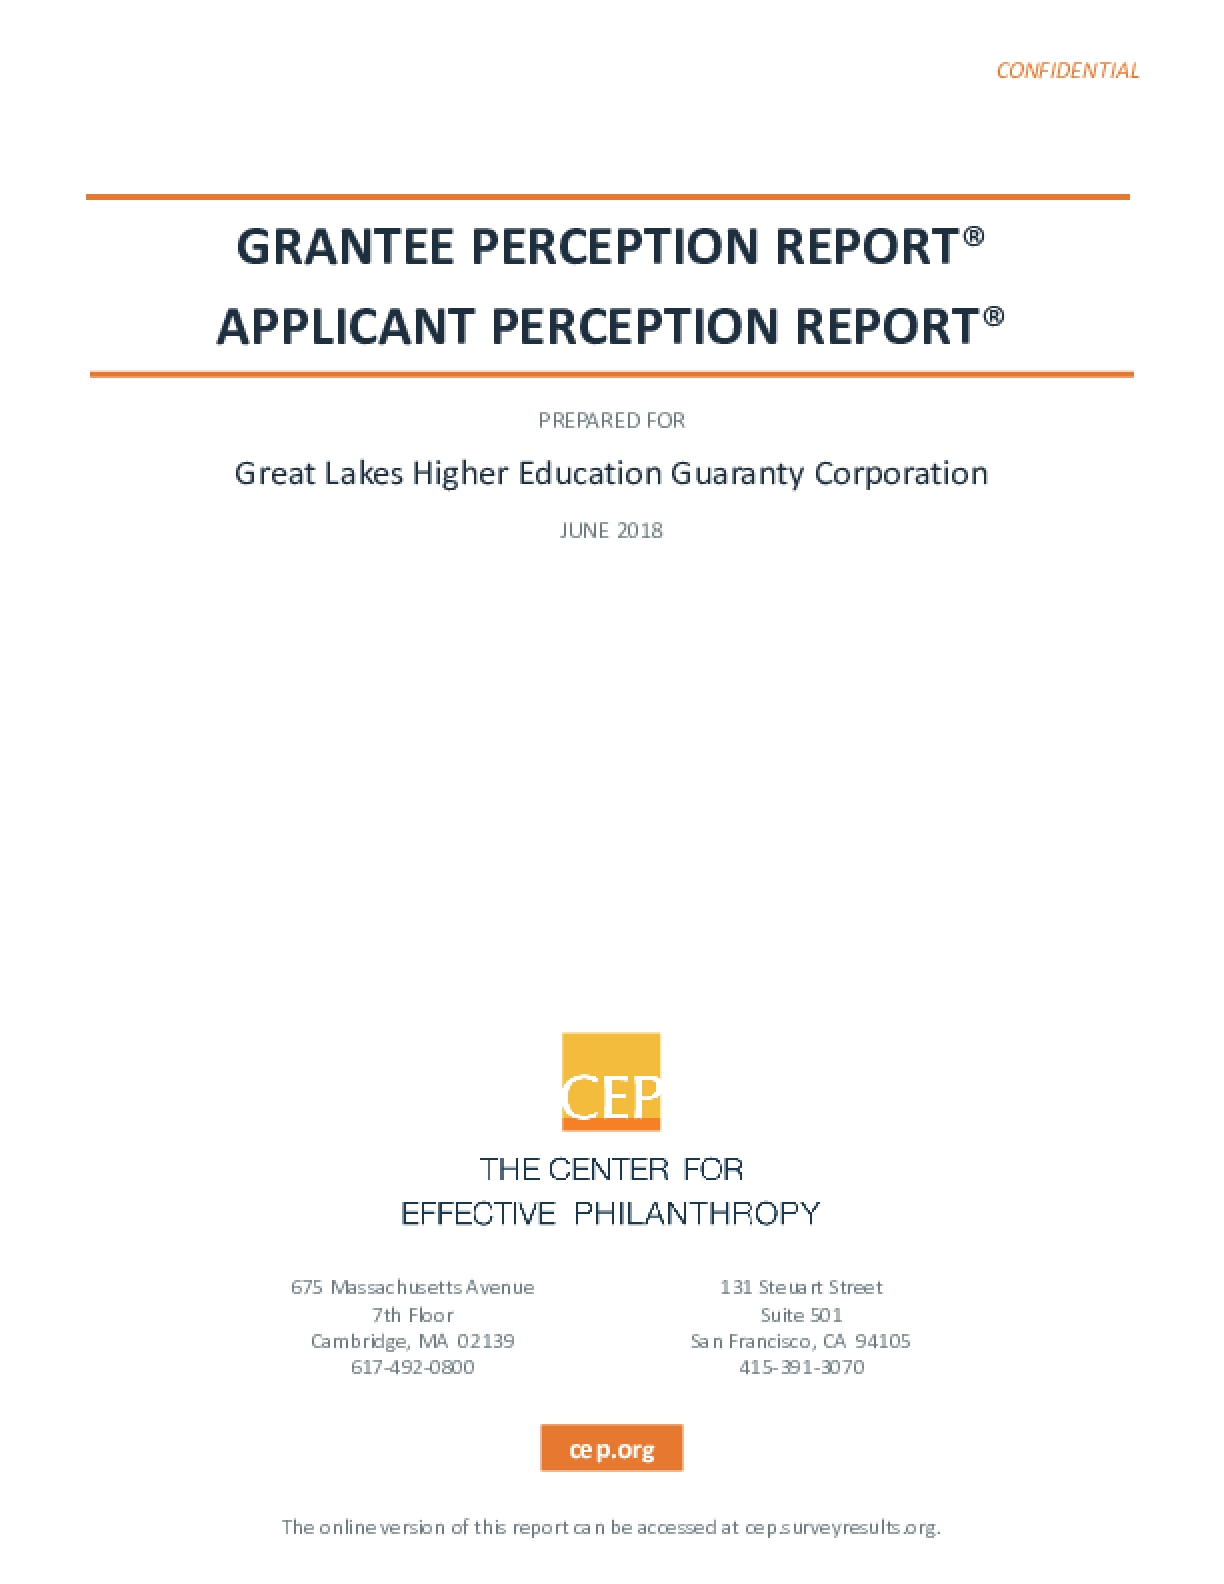 Grantee Perception Report for Great Lakes